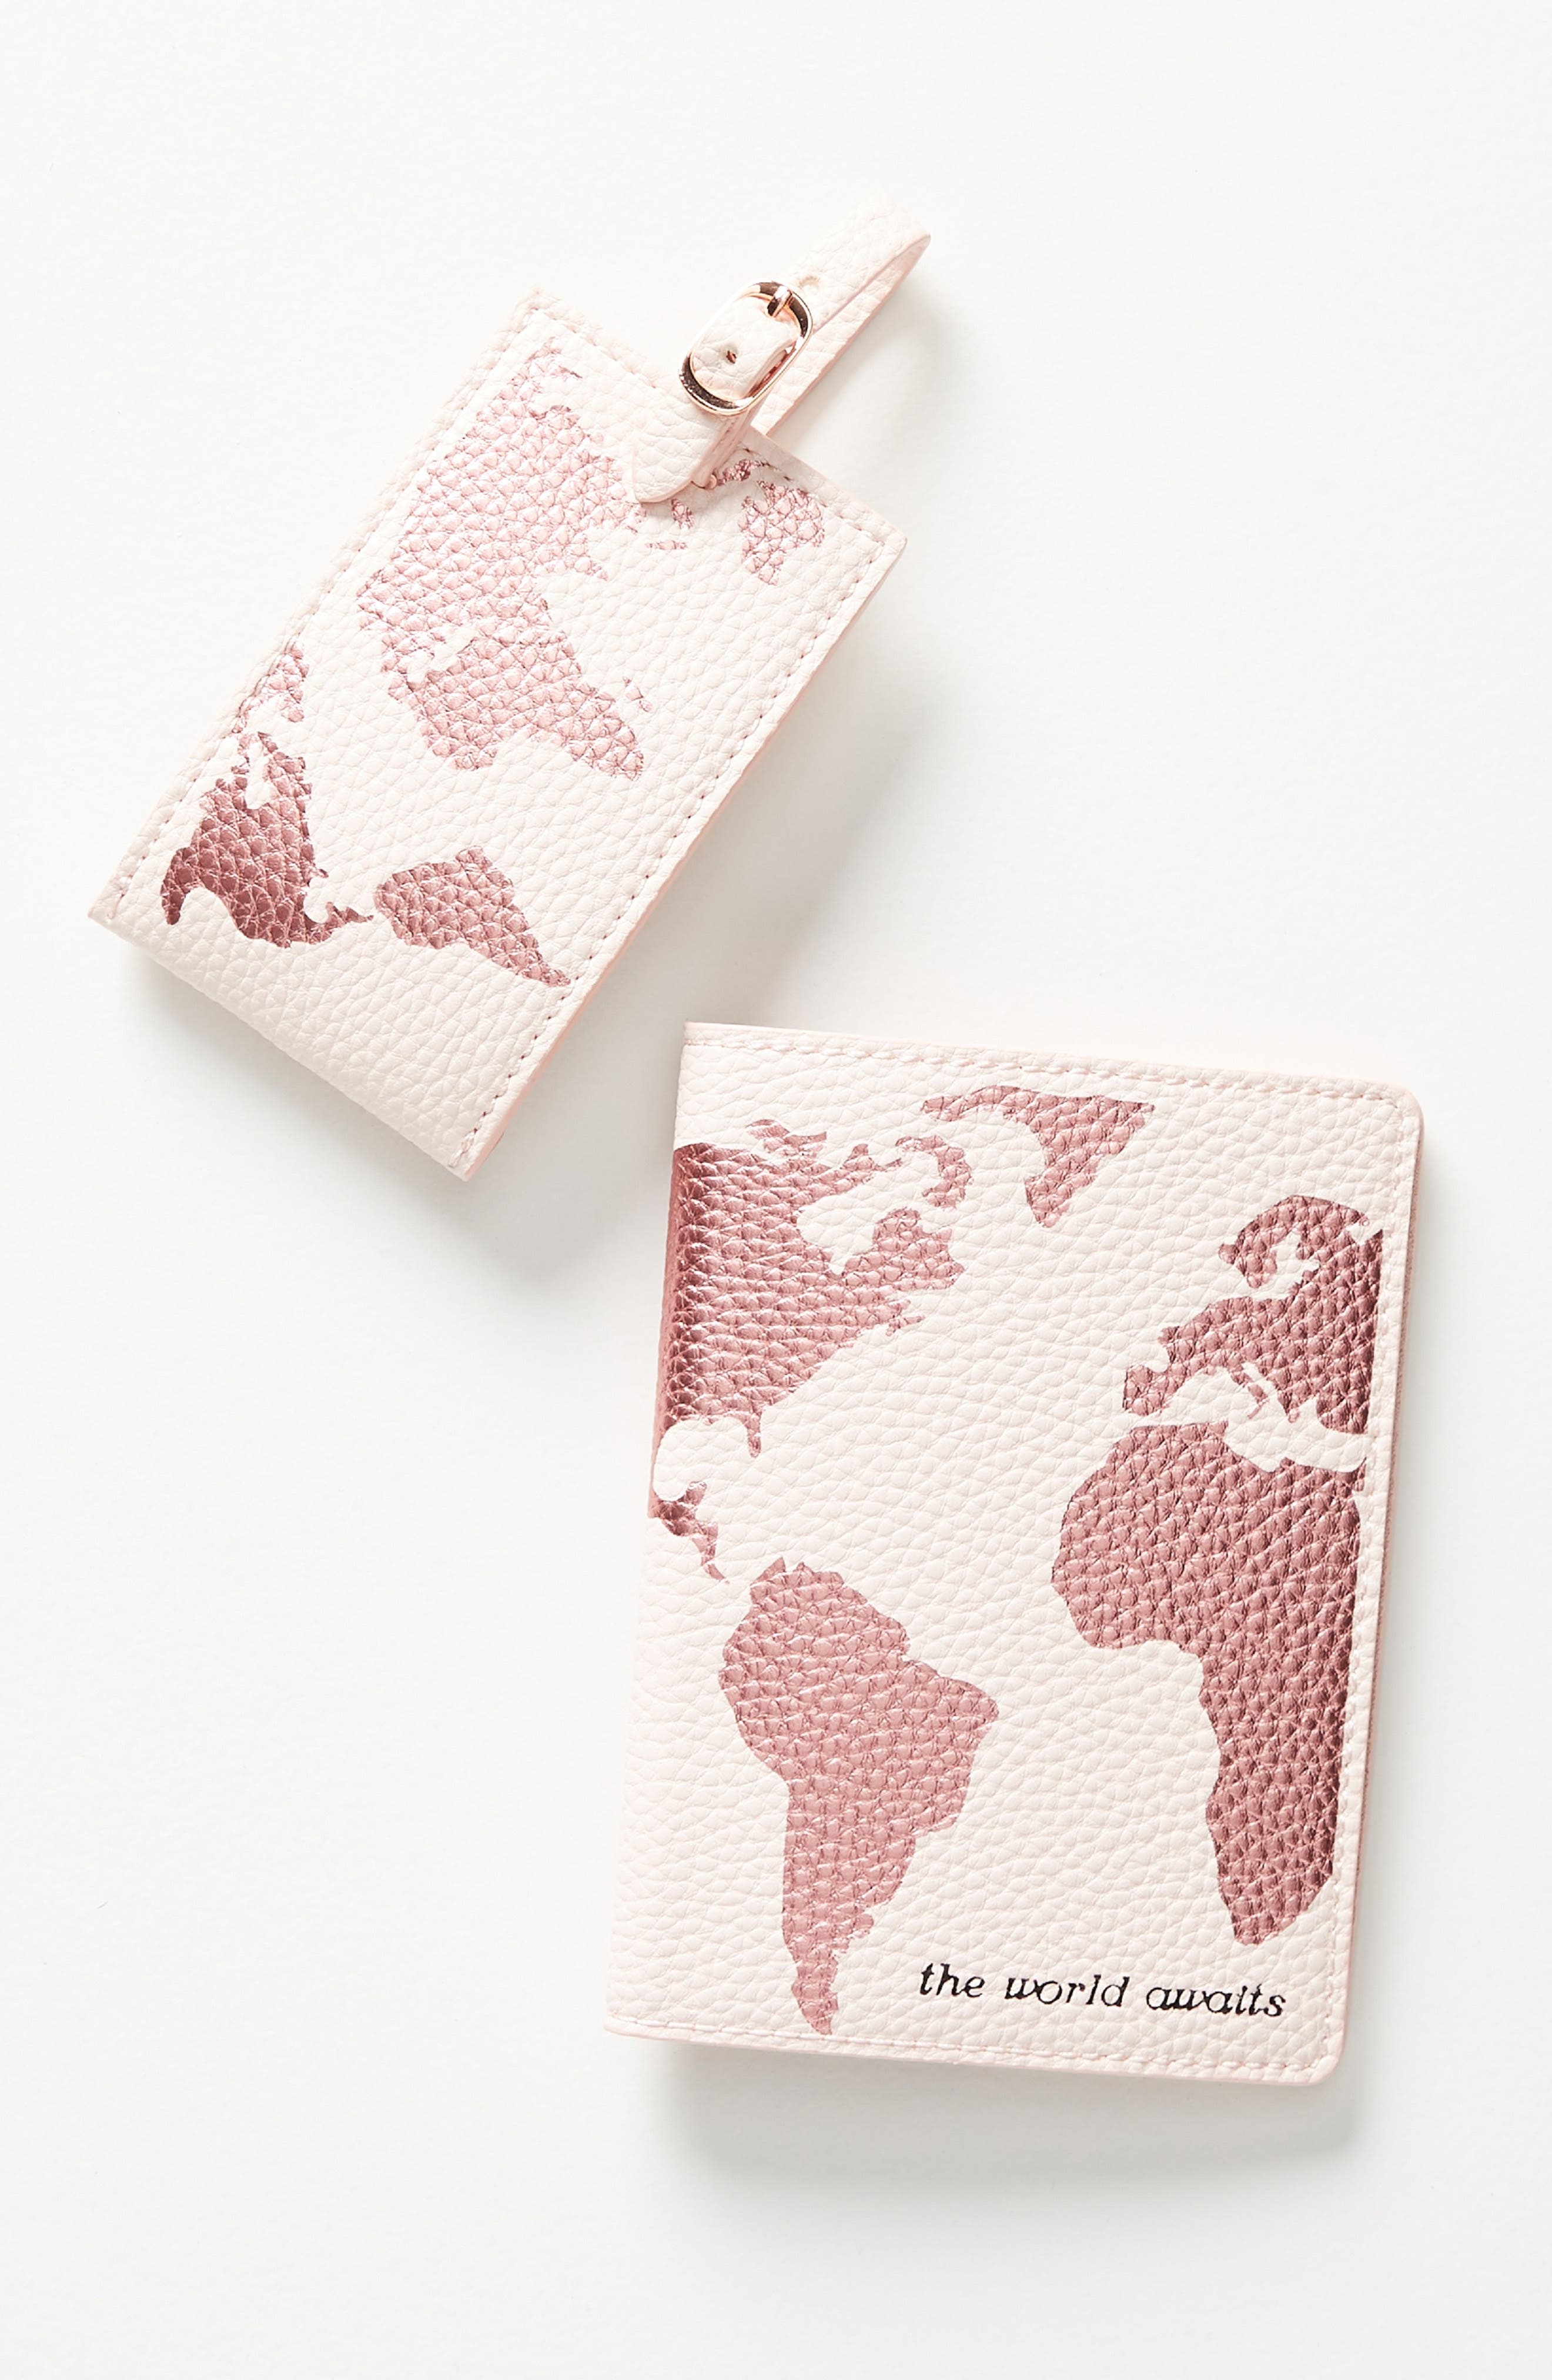 anthropologie luggage tag & passport cover set - pink